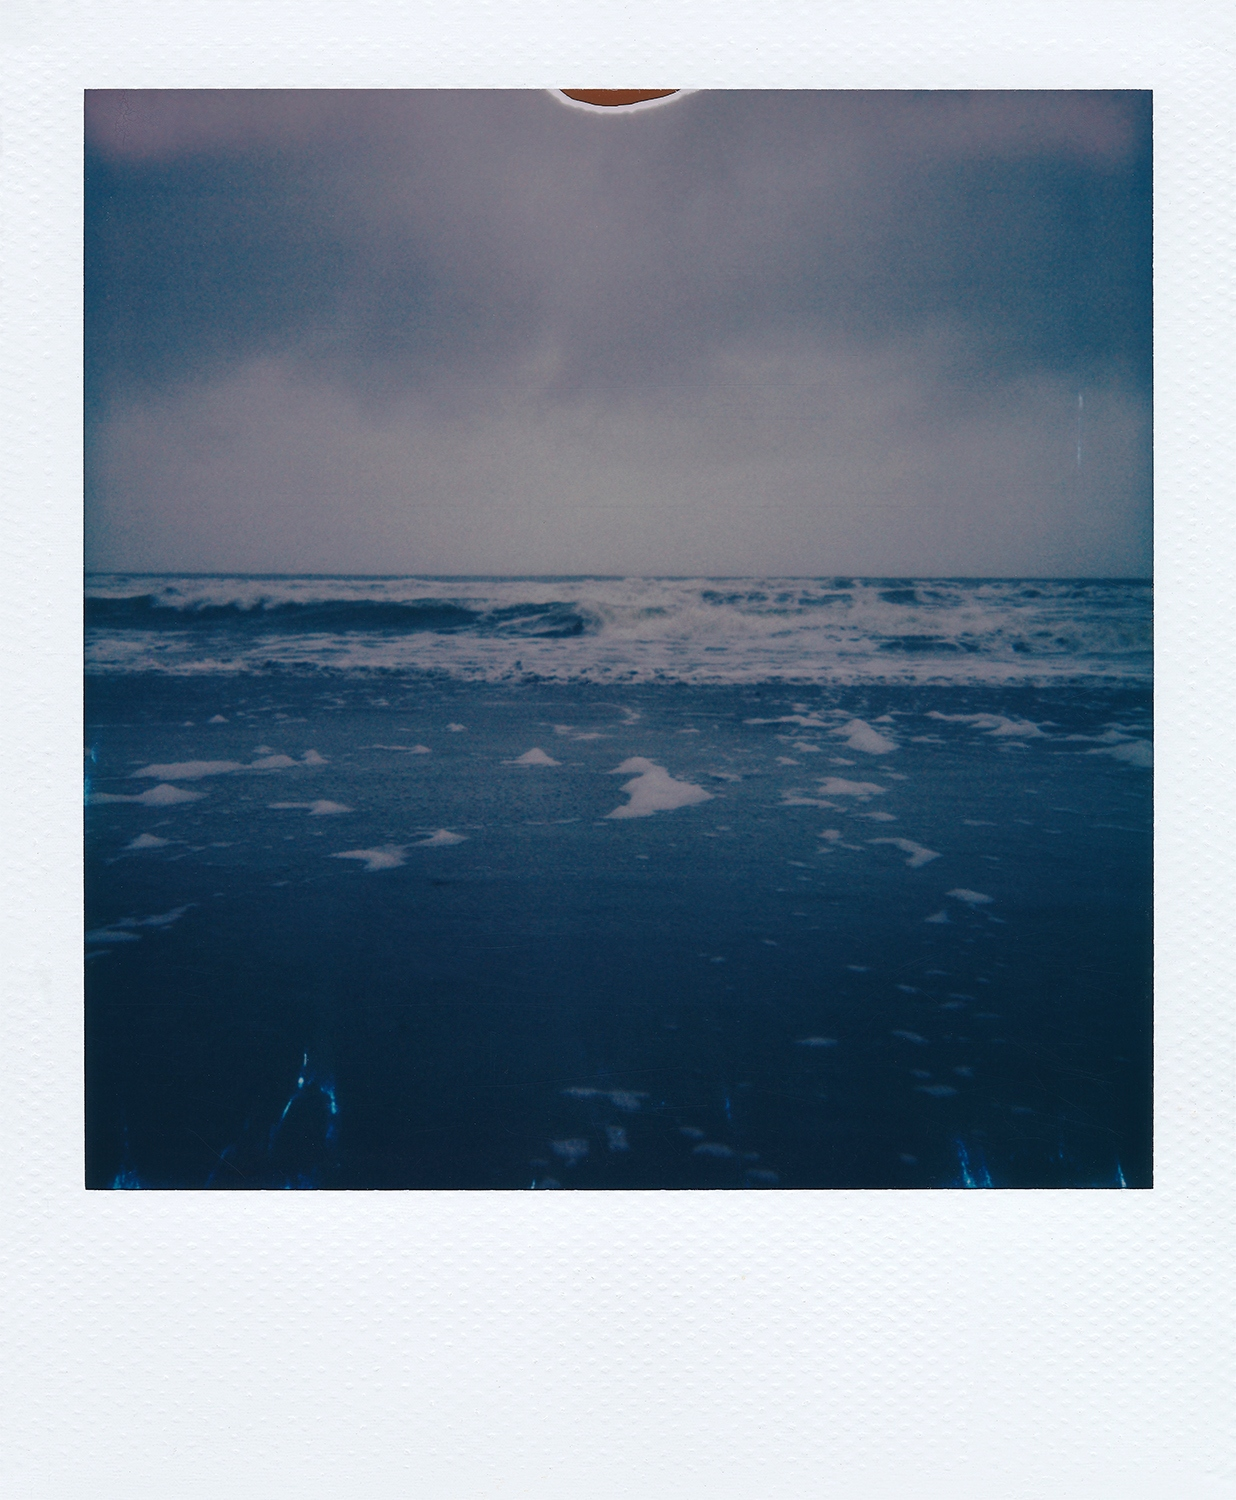 'Lost at Sea' curated by Michael Behlen (Founder of Analog Forever Magazine)